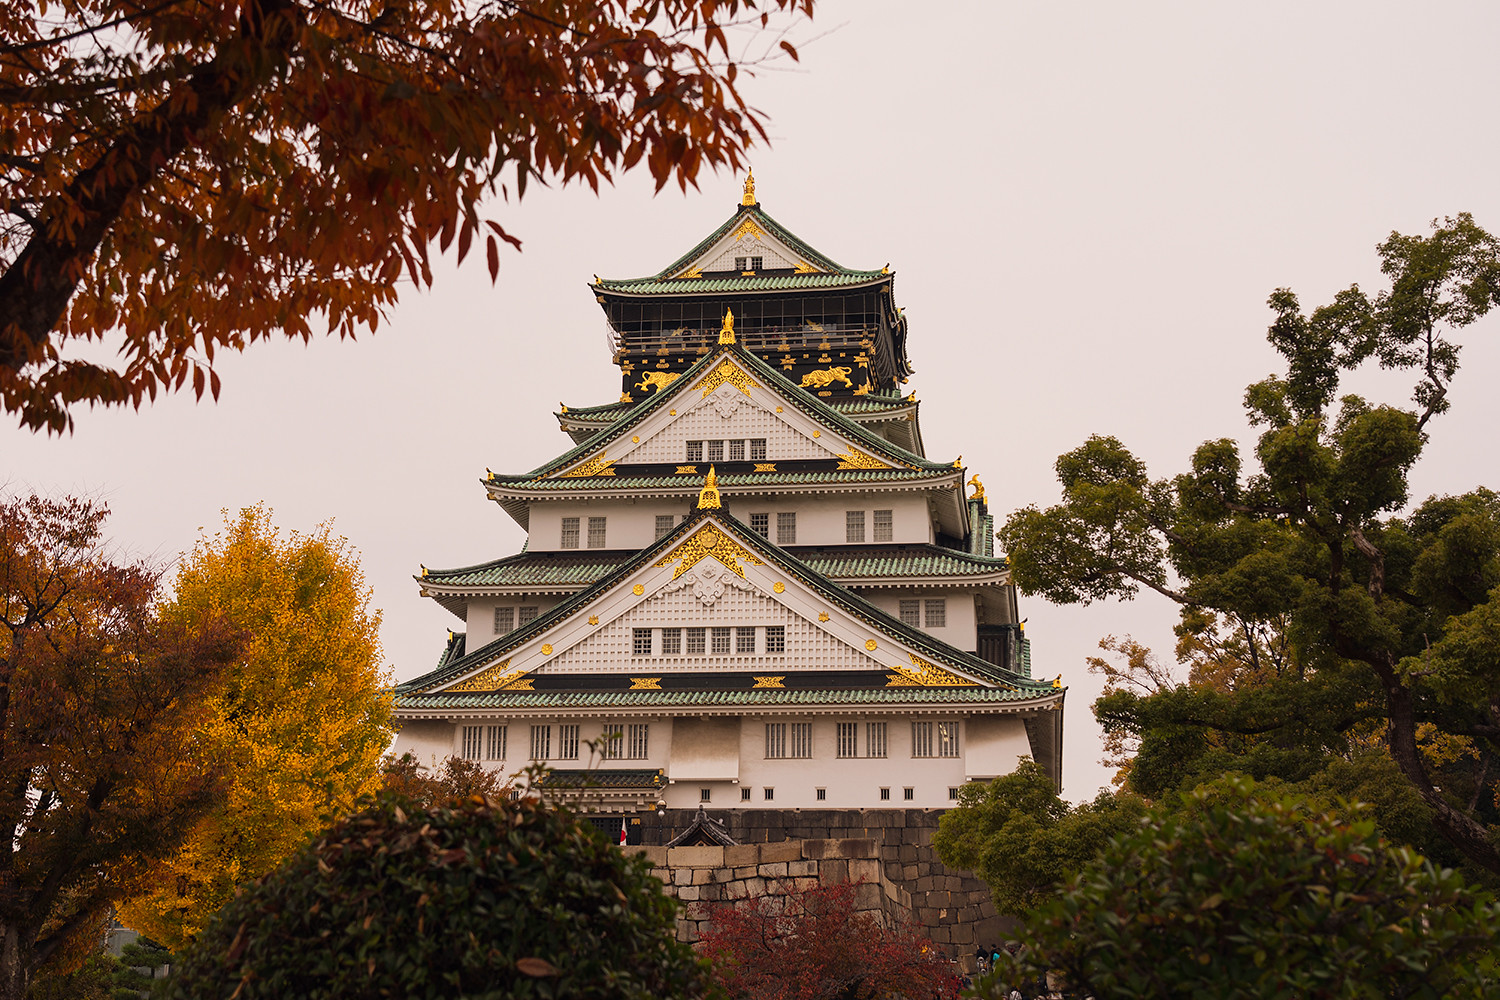 04osaka-castle-japan-fallfoliage-autumn-travel